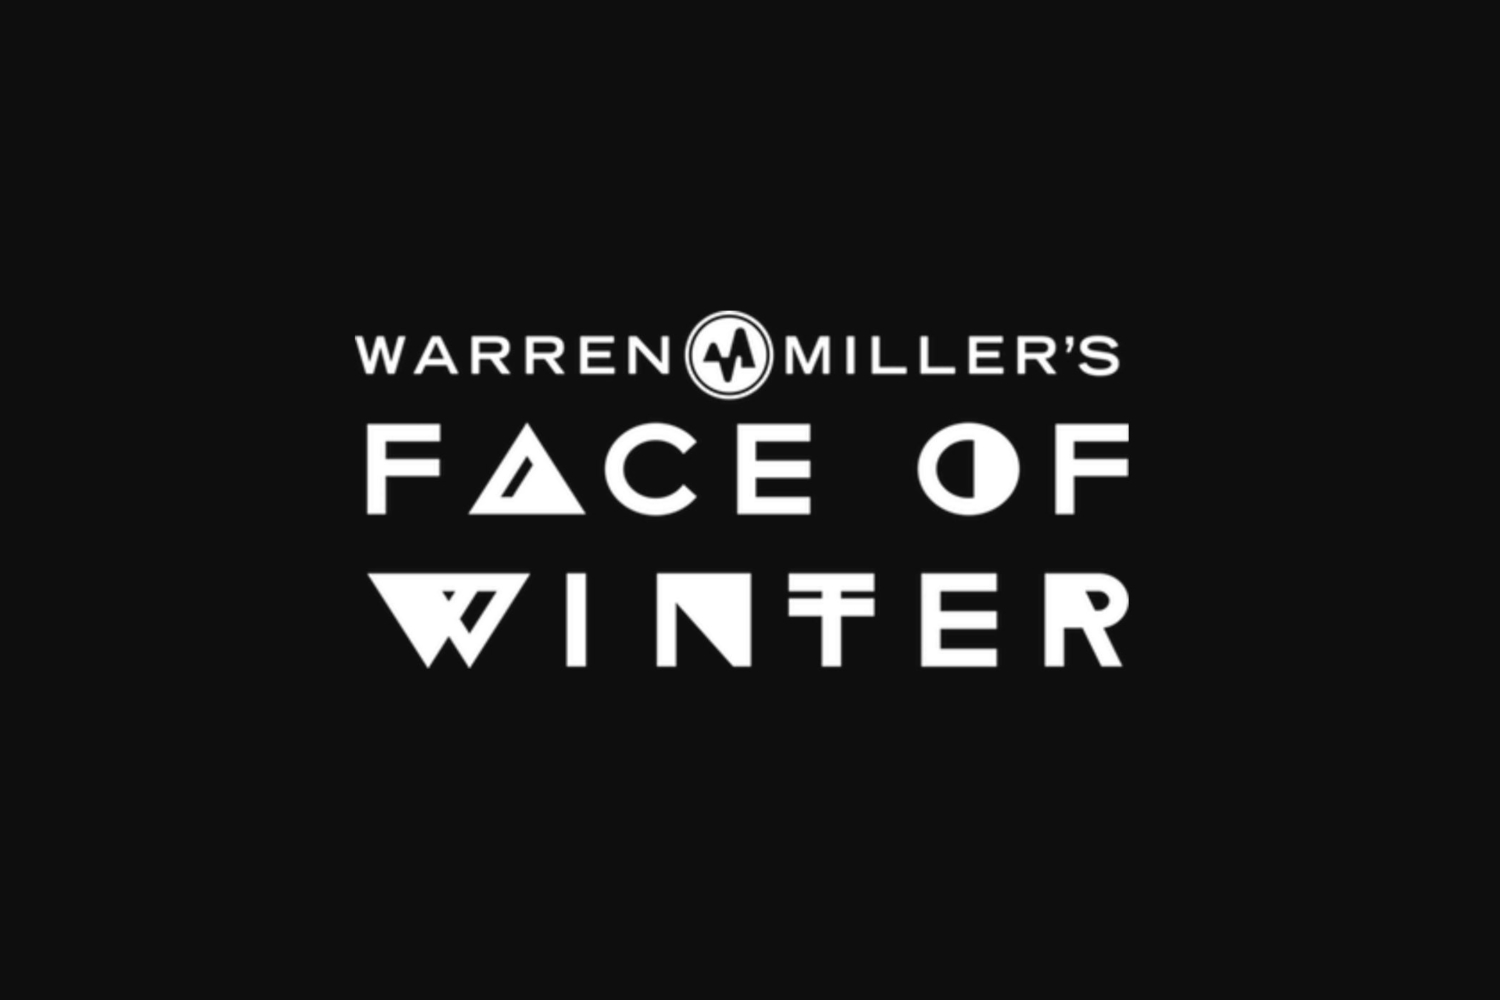 Warren Miller ski film Face of Winter